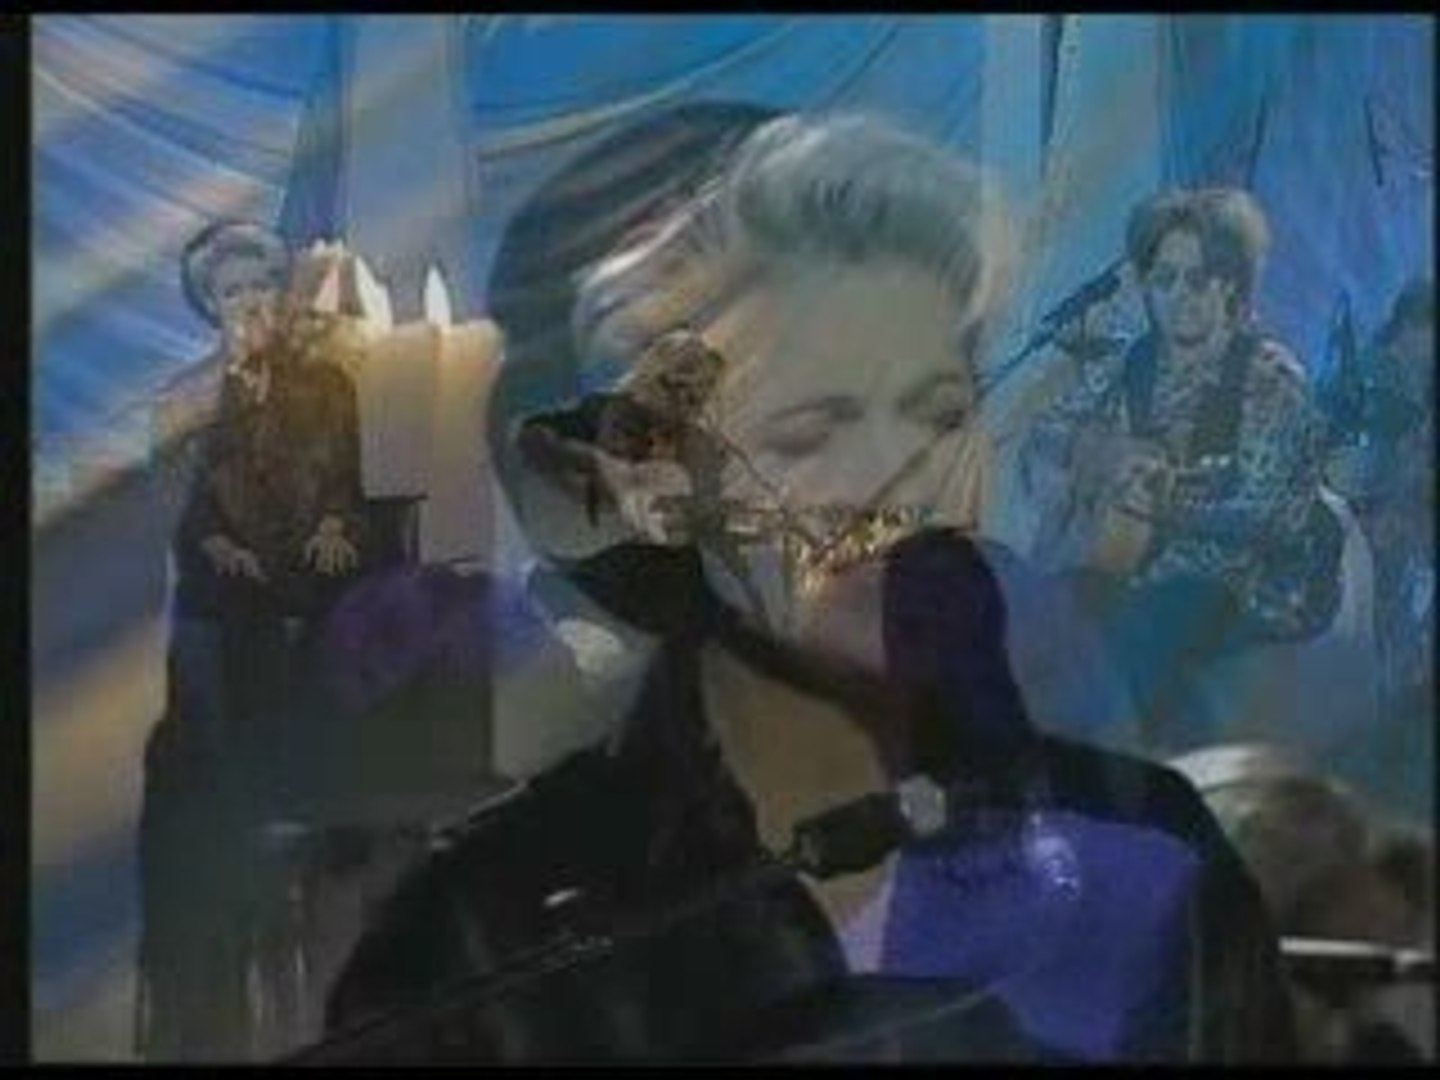 SPENDING MY TIME /ROXETTE